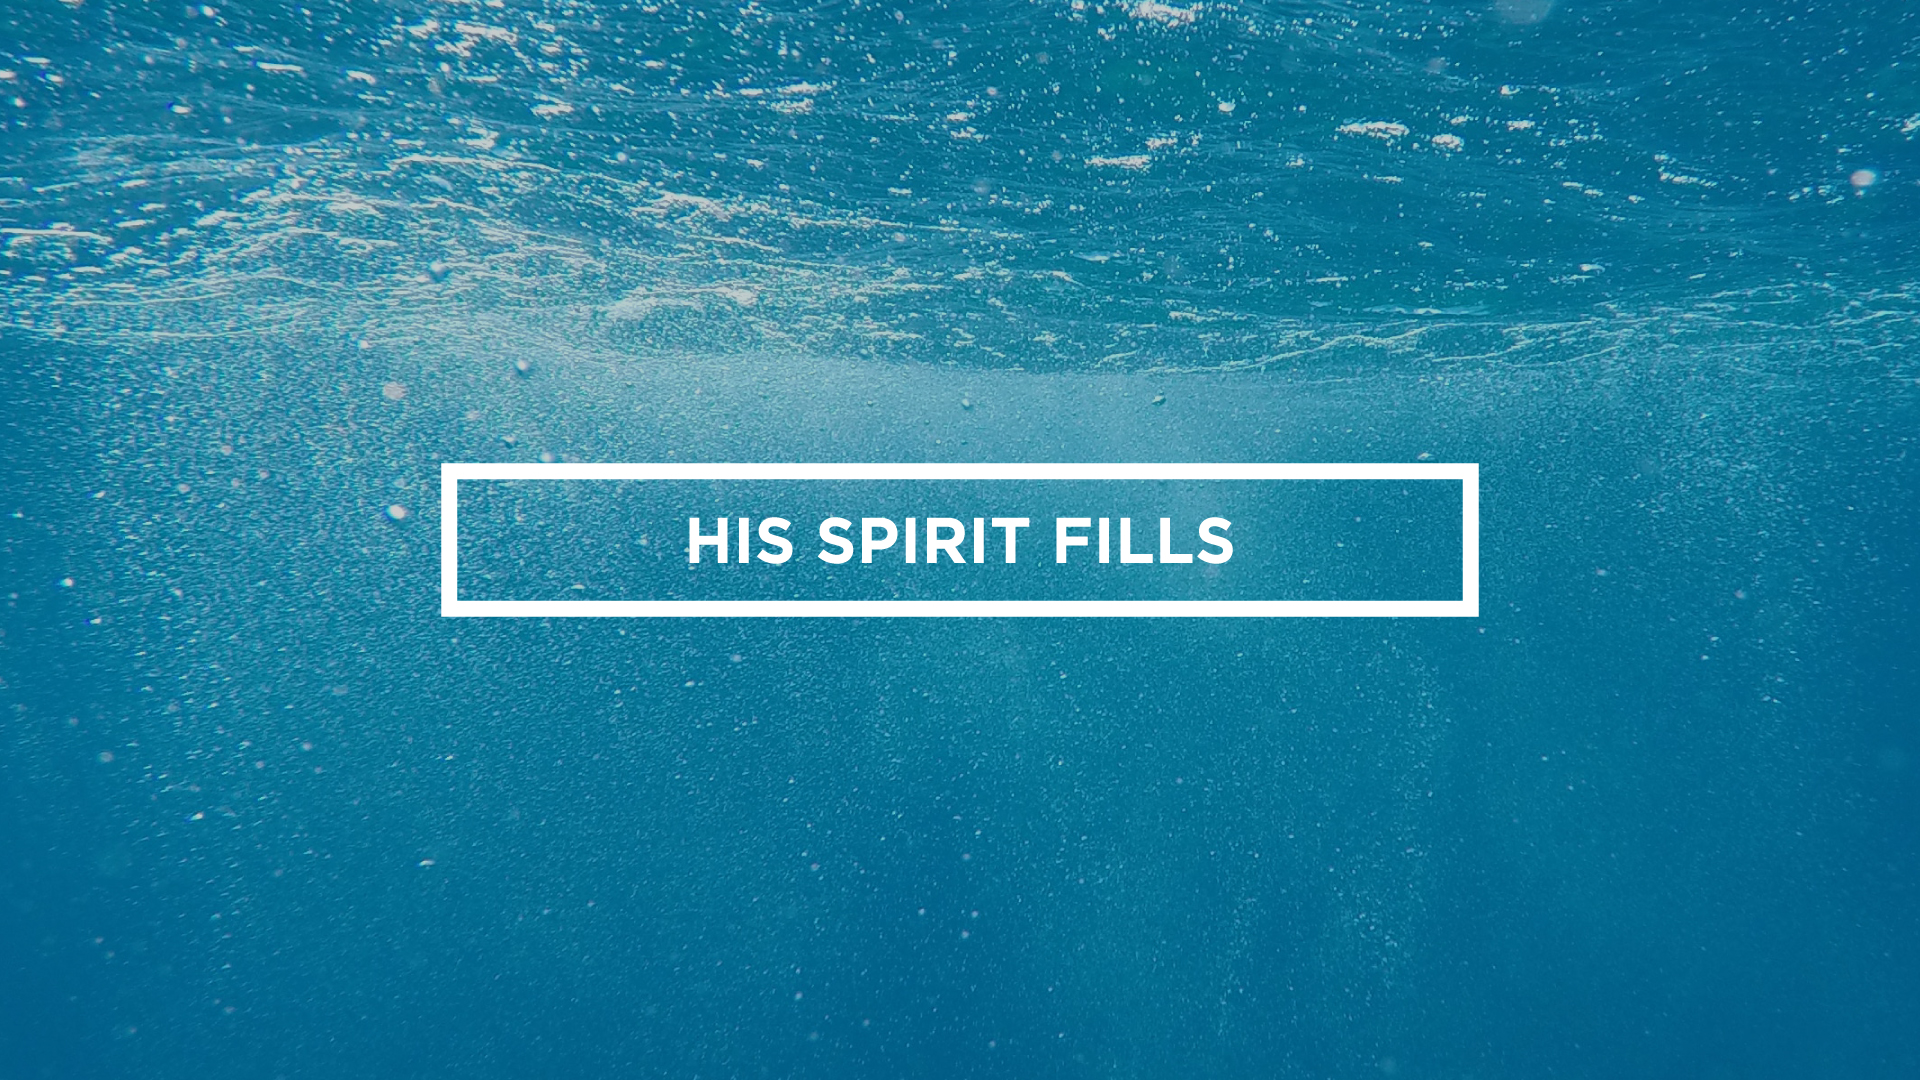 3. His Spirit Fills - The disciples of Jesus were called to live a Spirit-Filled life- including all that that means for their relationship with God, their personal character and the way in which they ministered. As disciples we want to pursue this life in the Holy Spirit.